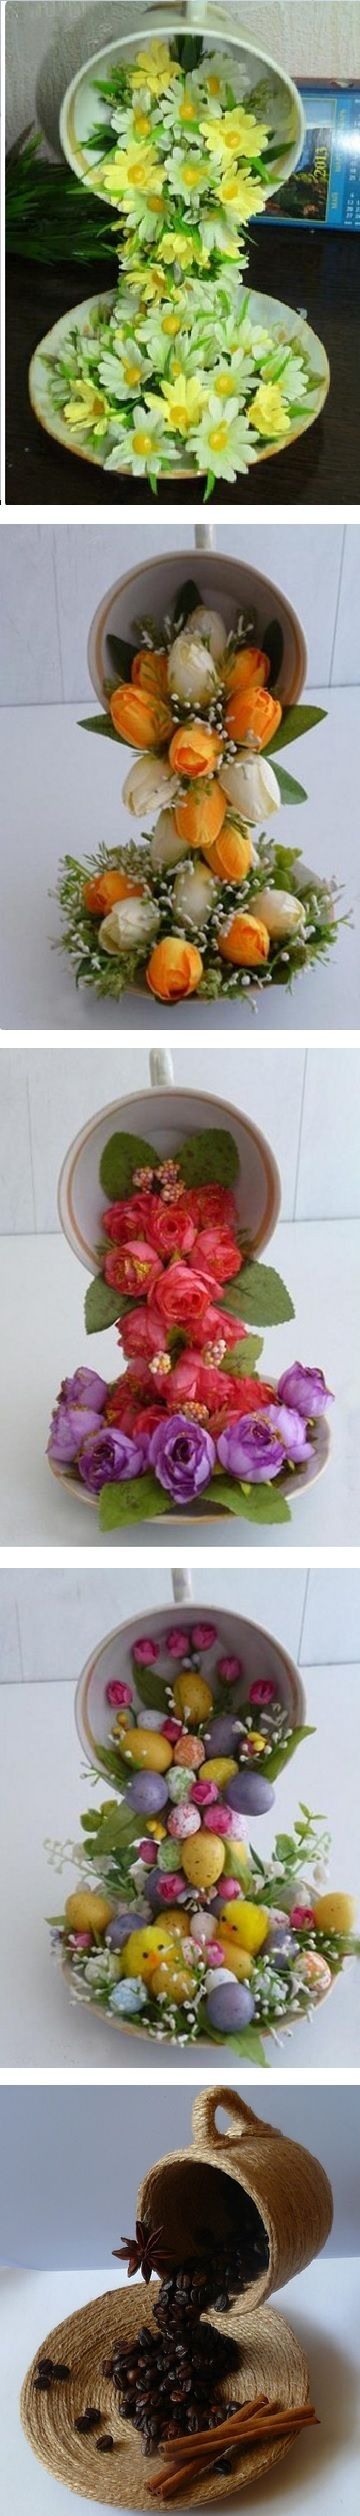 "Love this idea for recycling old teacups and saucers - pretty flower  ""waterfalls""! :)   Tutorial."